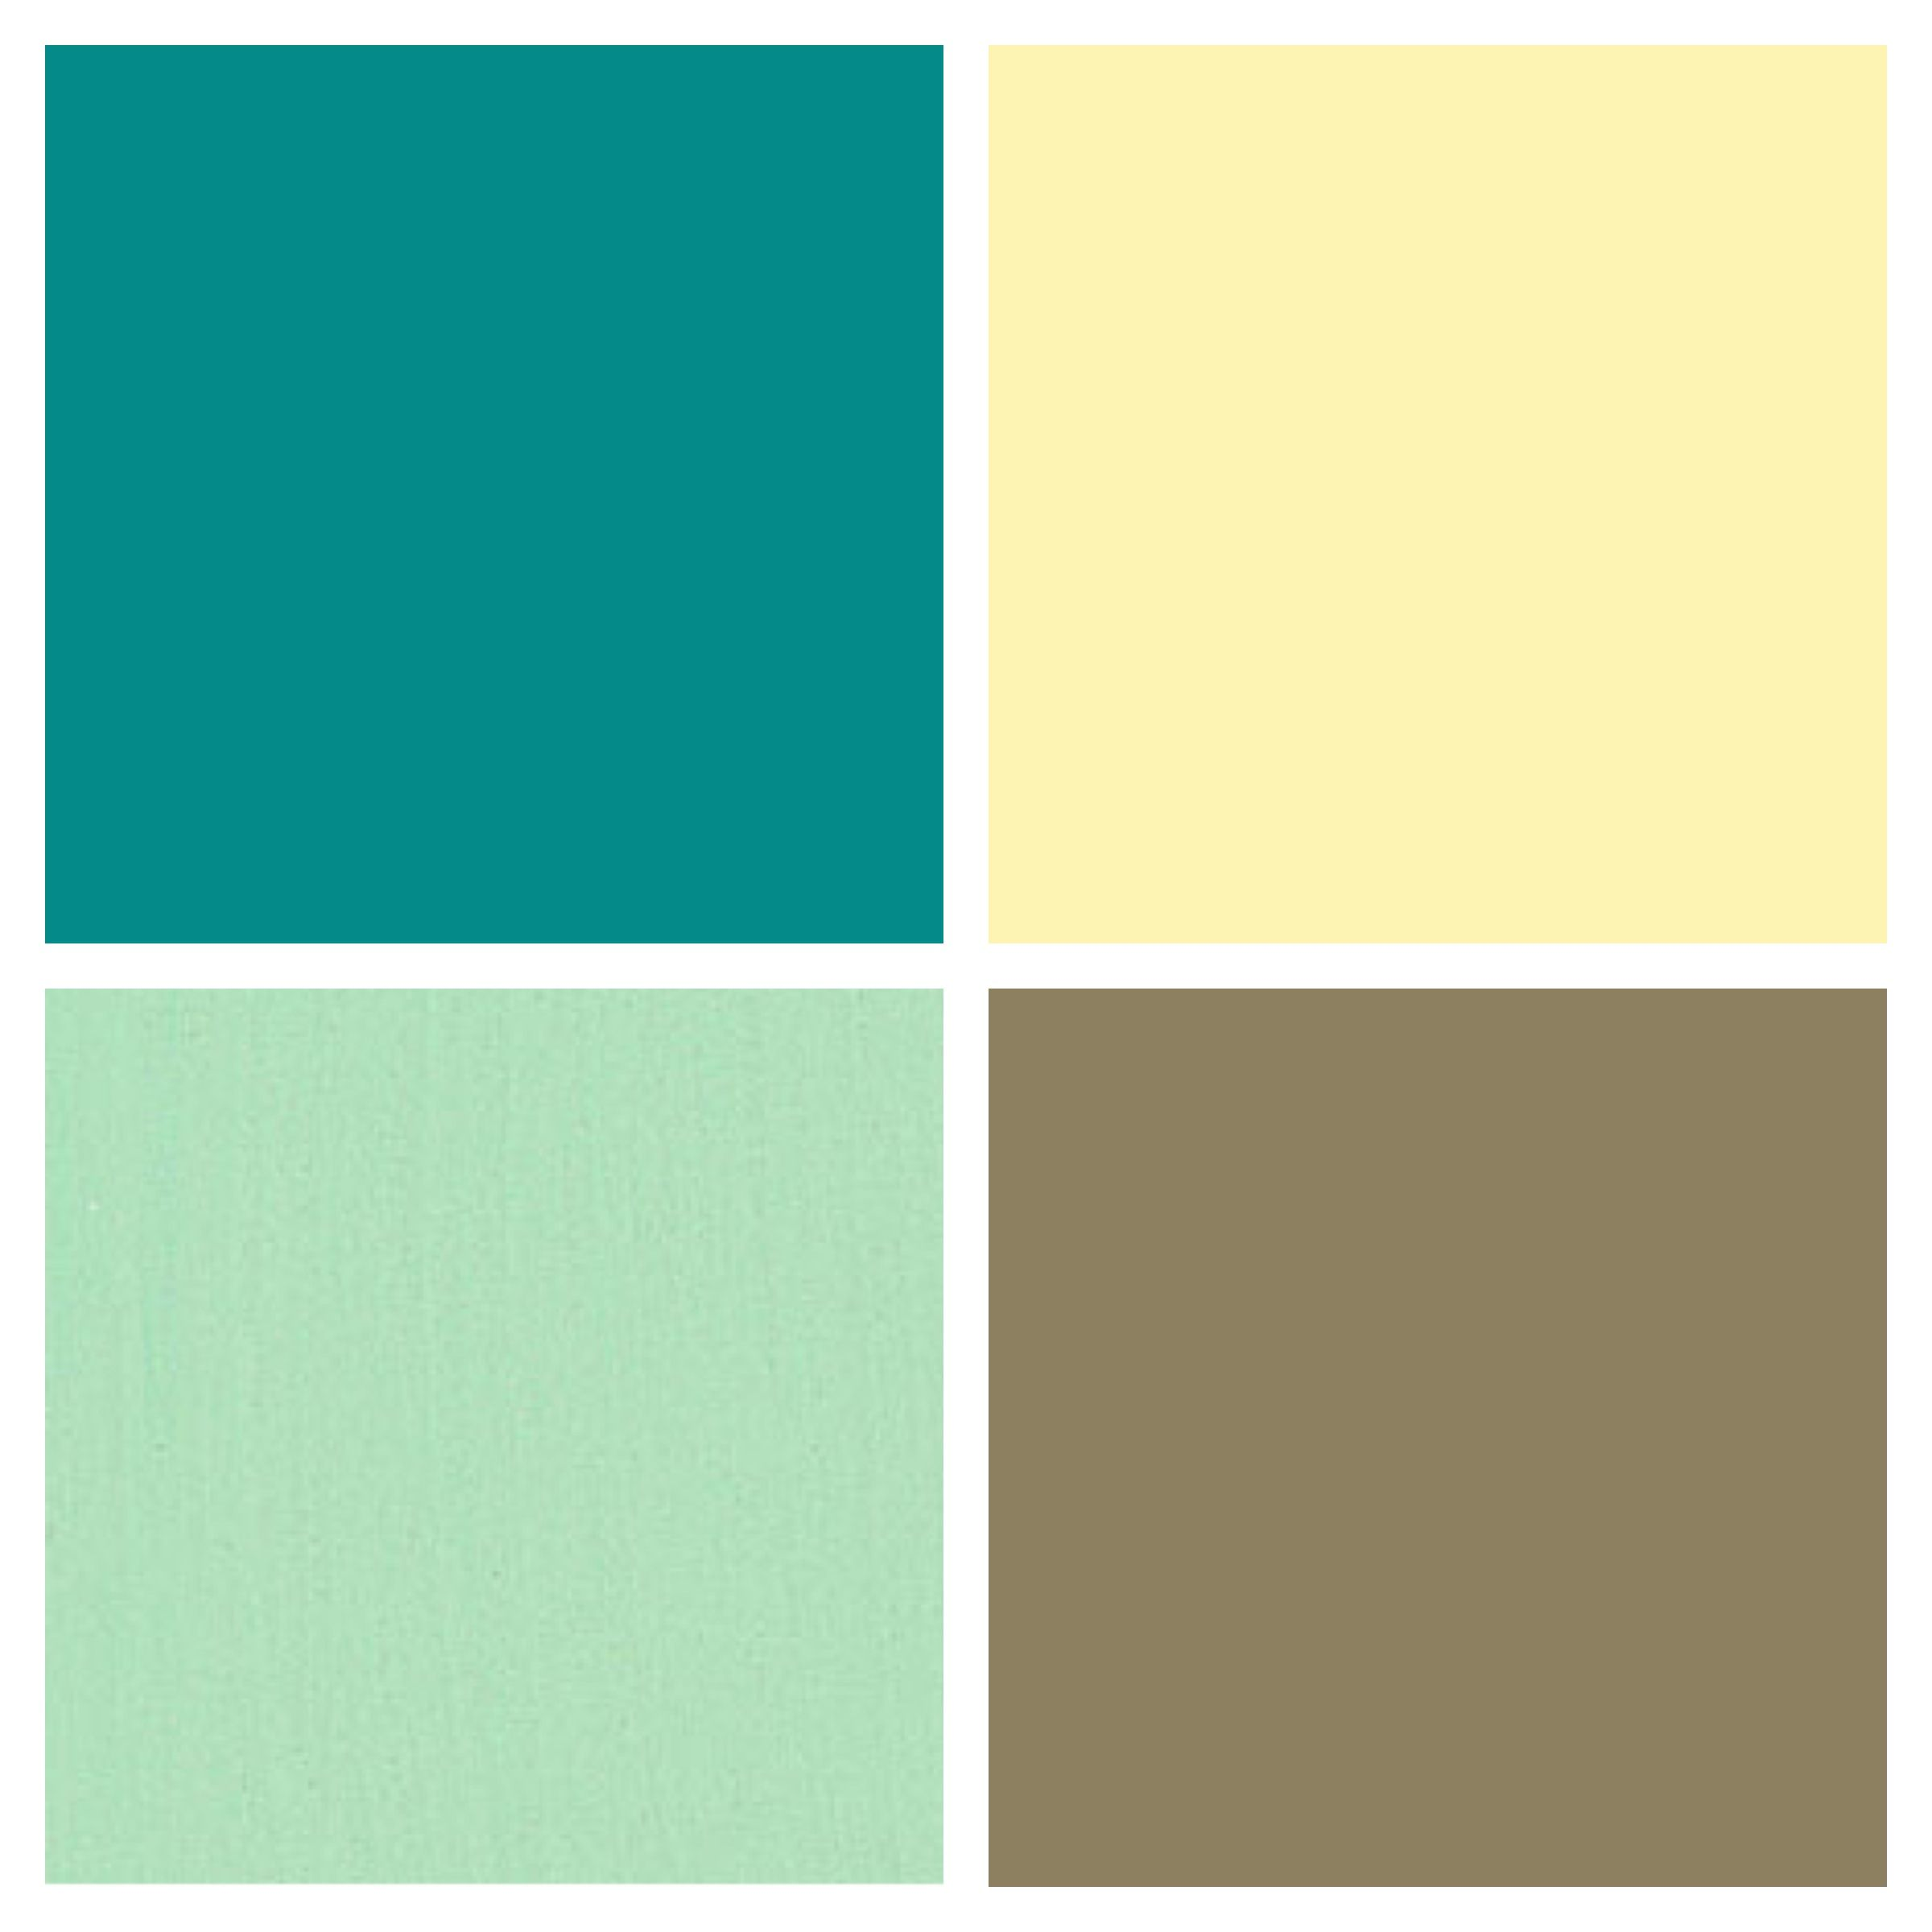 Kitchen color palette butter country yellow mint - Bathroom color schemes brown and teal ...